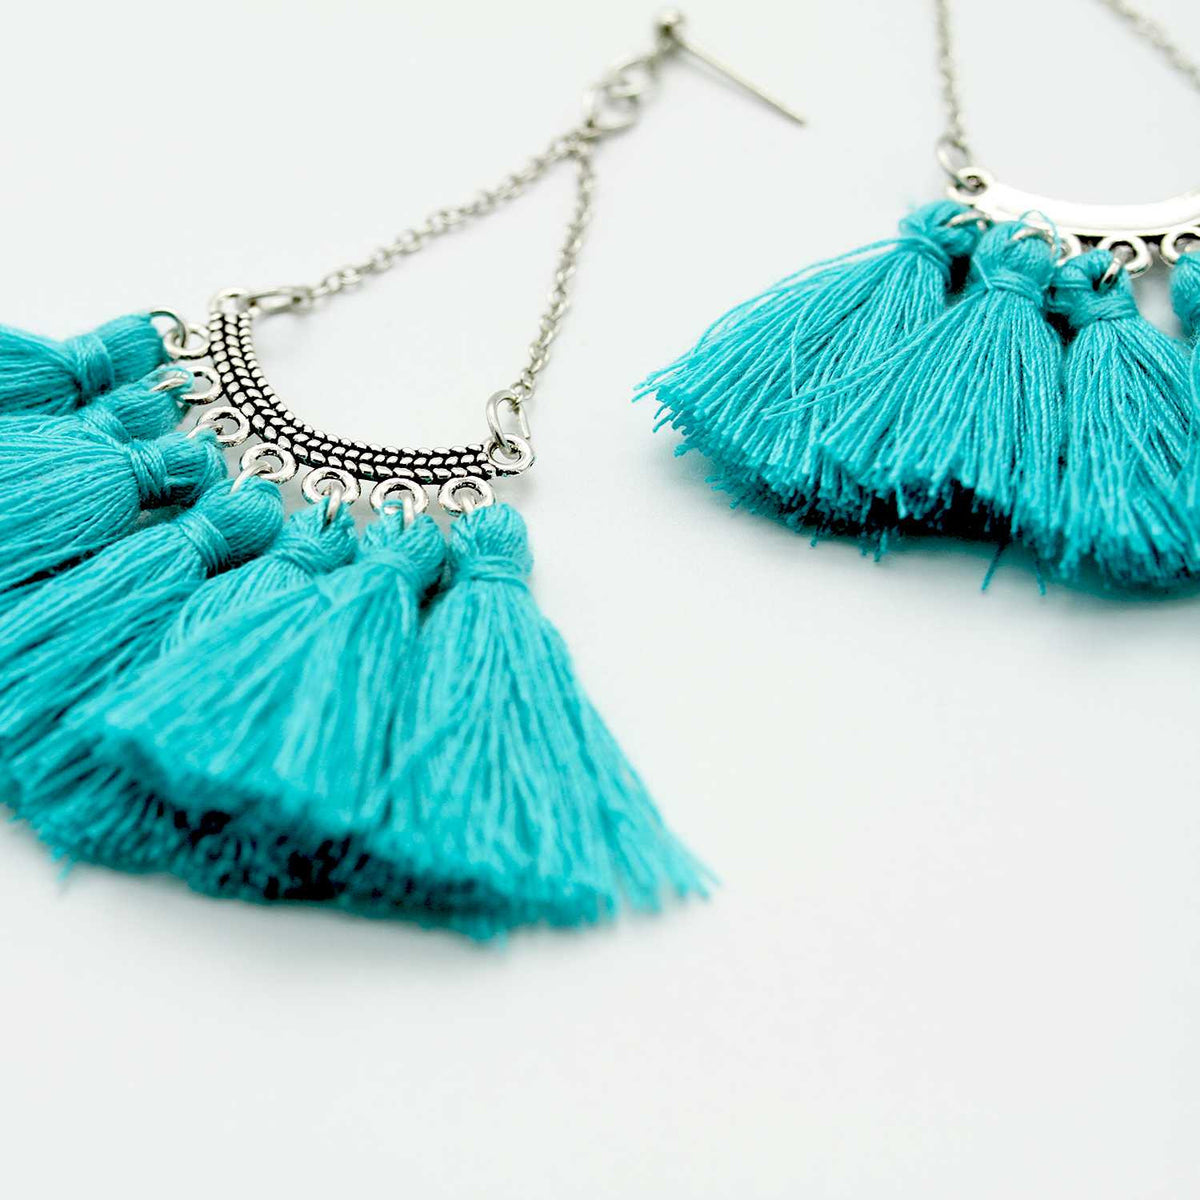 Special Gift - Boho Style Aqua Tassel Earrings - worthtryit.com